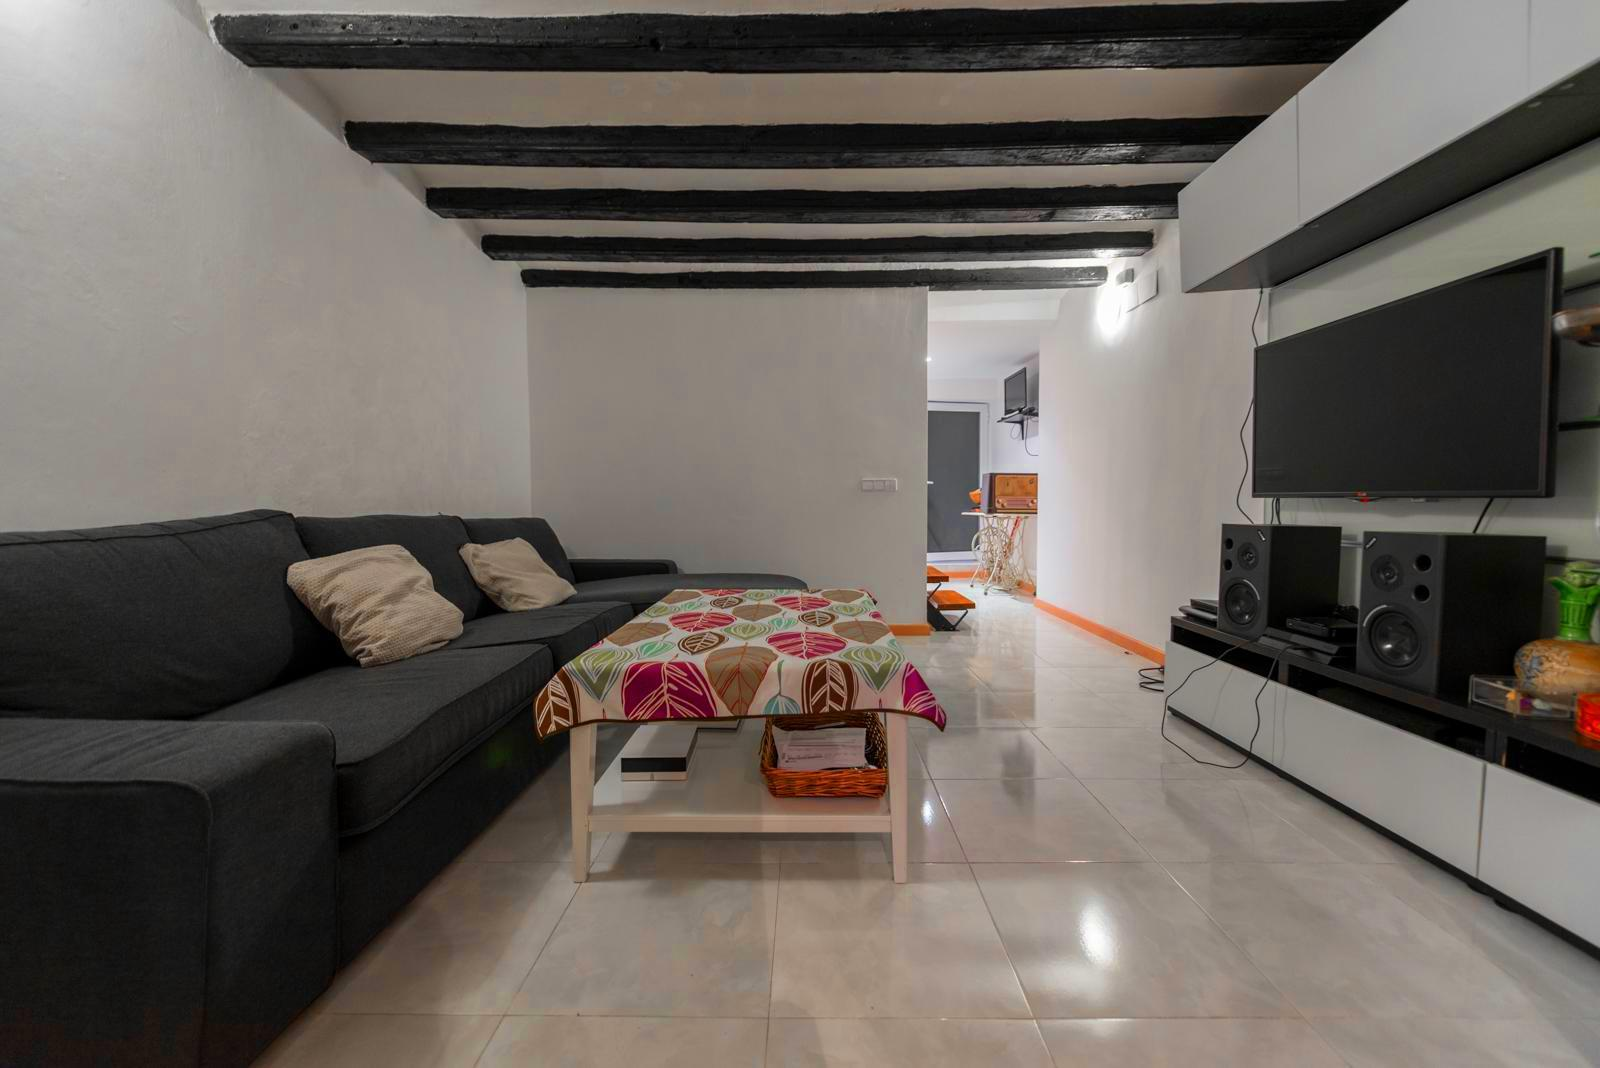 207708 Ground Floor for sale in Ciutat Vella, Barri Gòtic 1